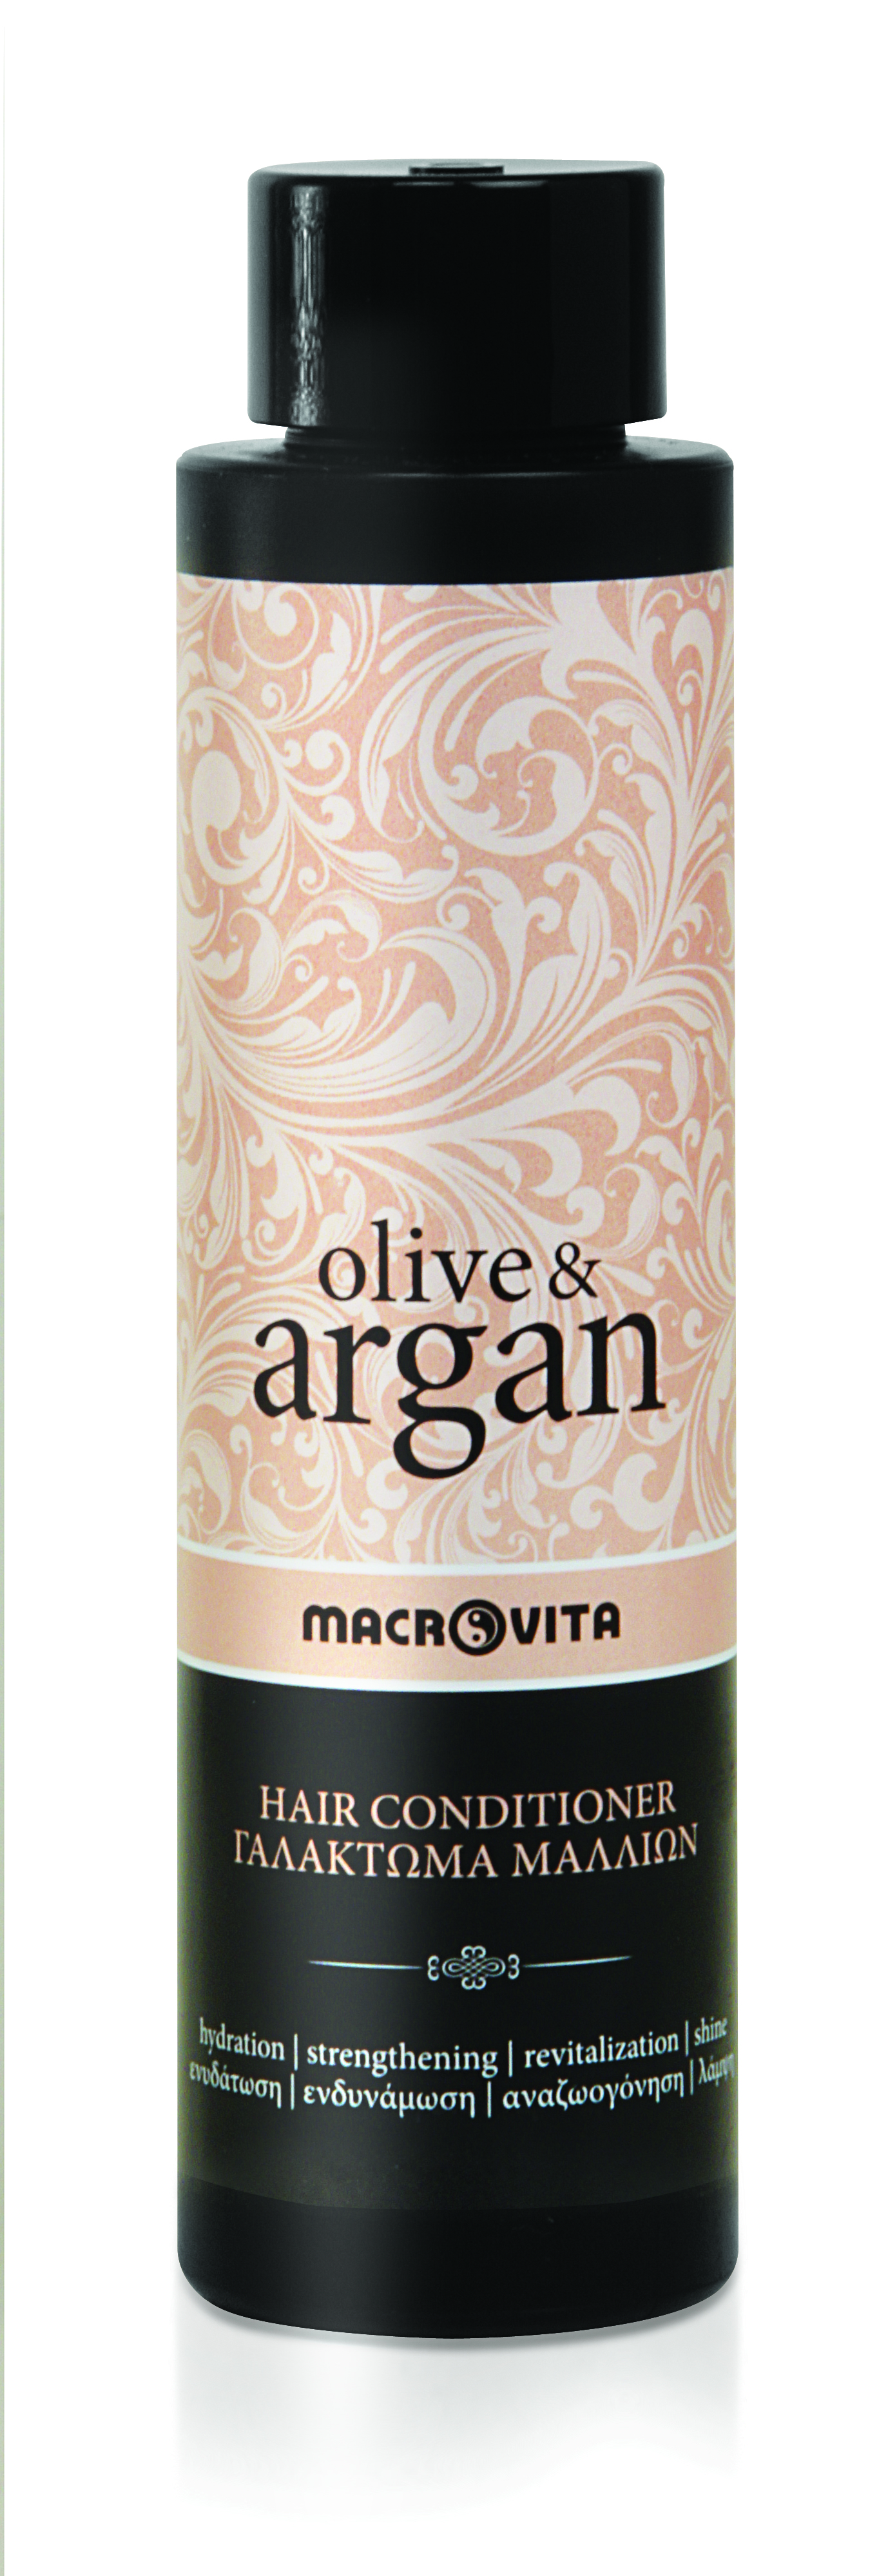 Macrovita Olive & Argan Hair Conditioner Γαλάκτωμα Μαλλιών 200ml